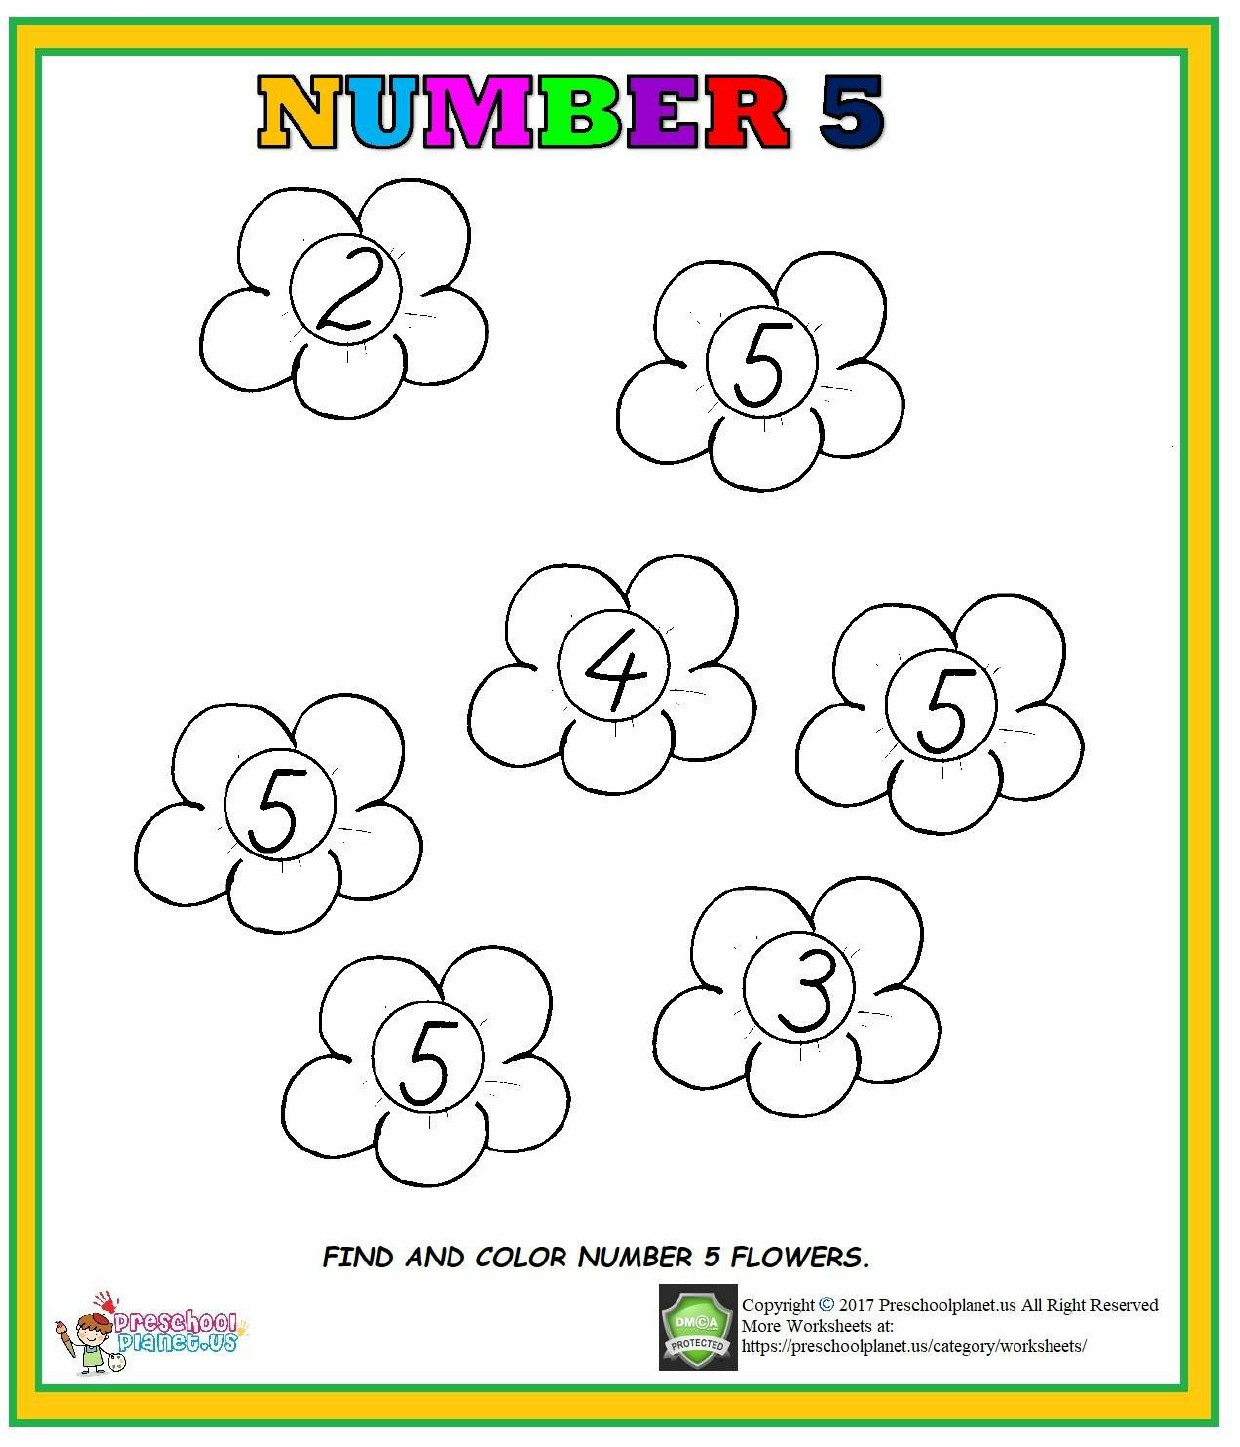 Number 5 Worksheet For Preschool Kindergarten